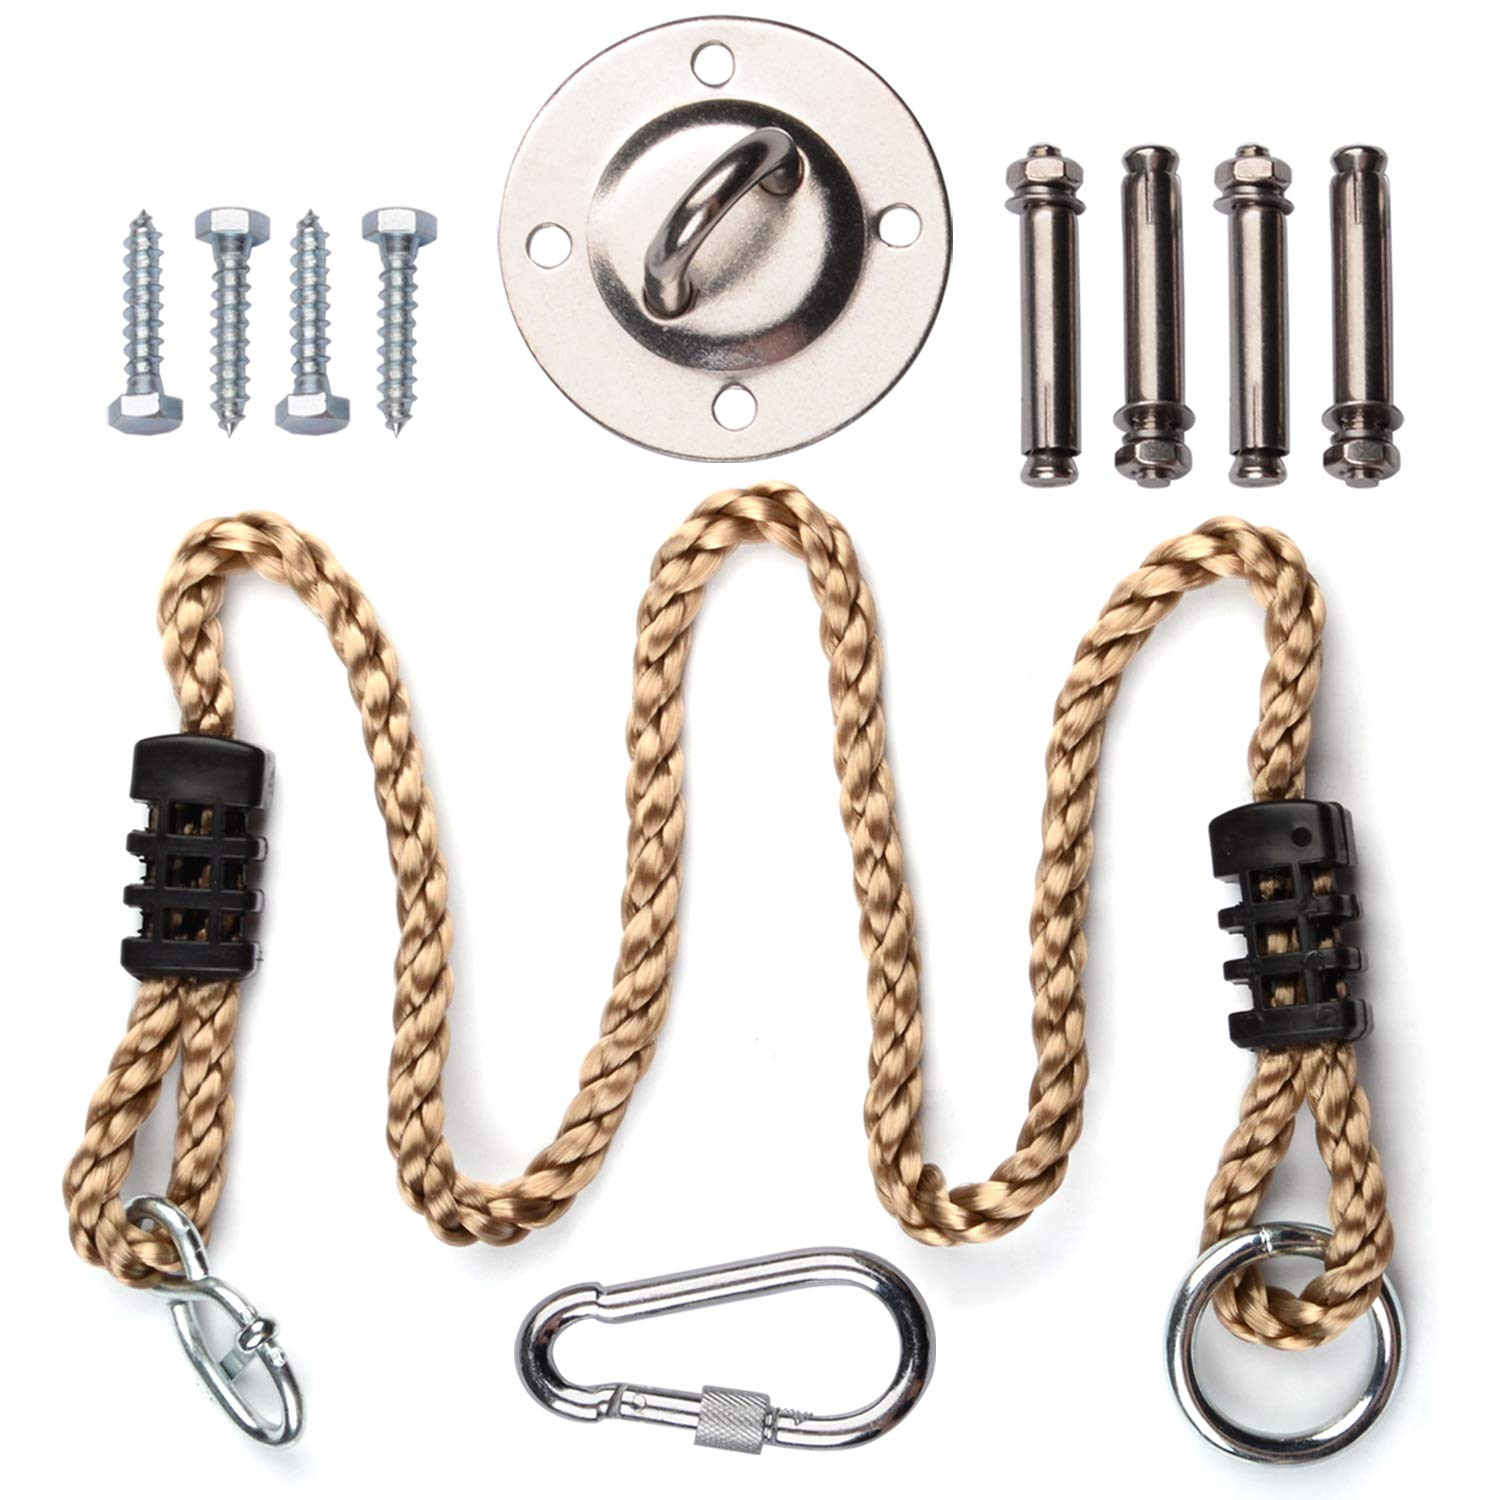 Amotor Hammock Hanging Kit, Stainless Steel Hammock Hook 600 LB with 40 Nylon Rope for Hammock, Hanging Chair, Punching Bag, Yoga Training, Ceiling,Swings